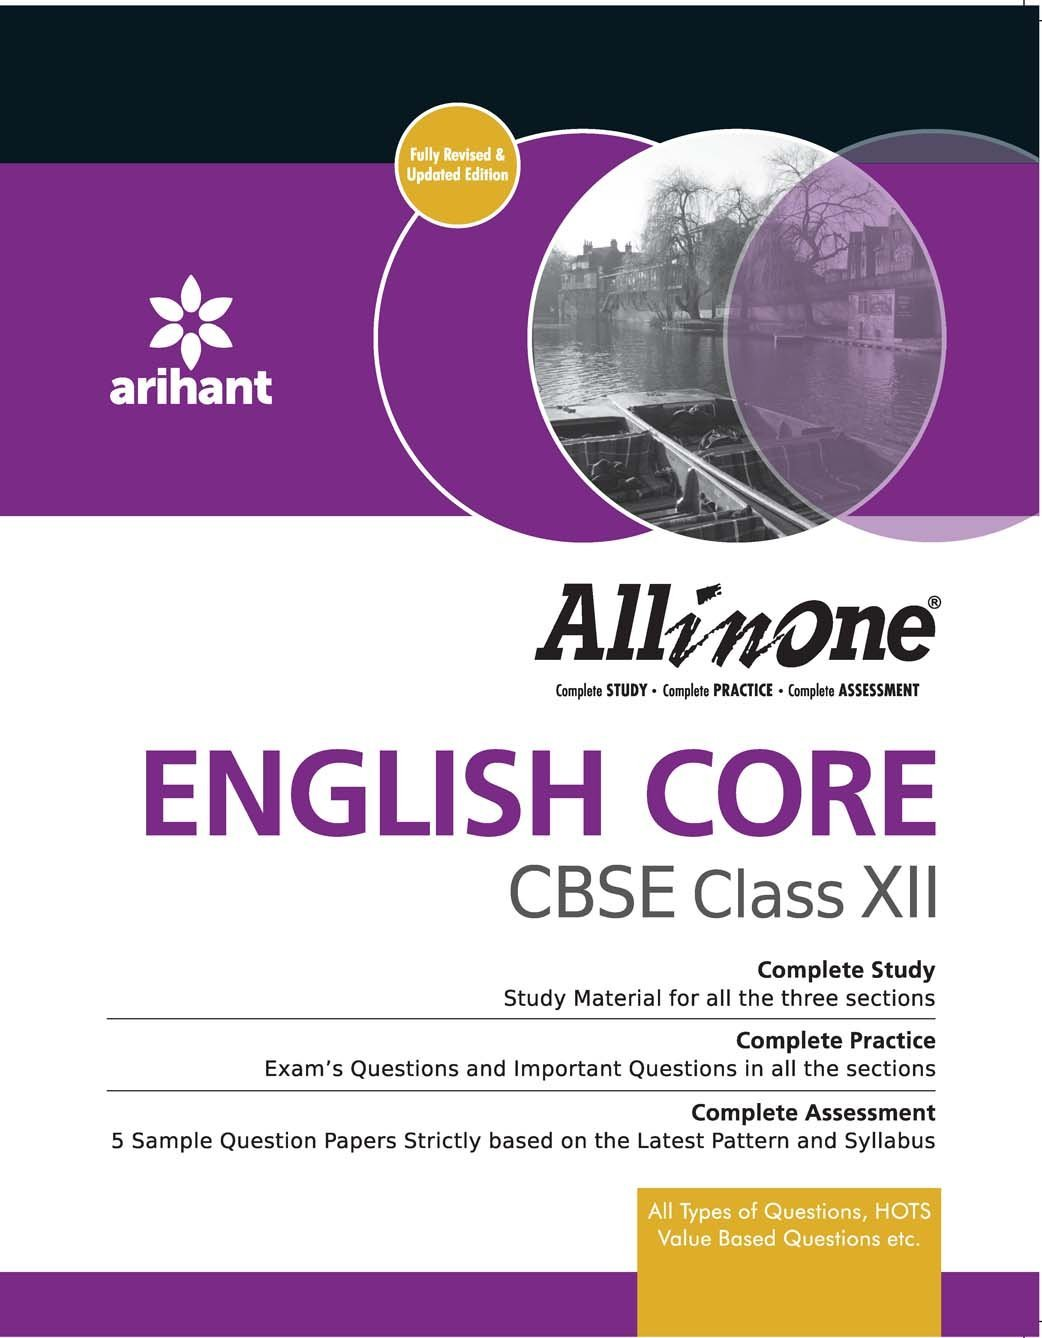 CBSE All in One ENGLISH CORE Class 12th: Amazon.in: Vibha Gupta, Kapil  Sabarwal: Books